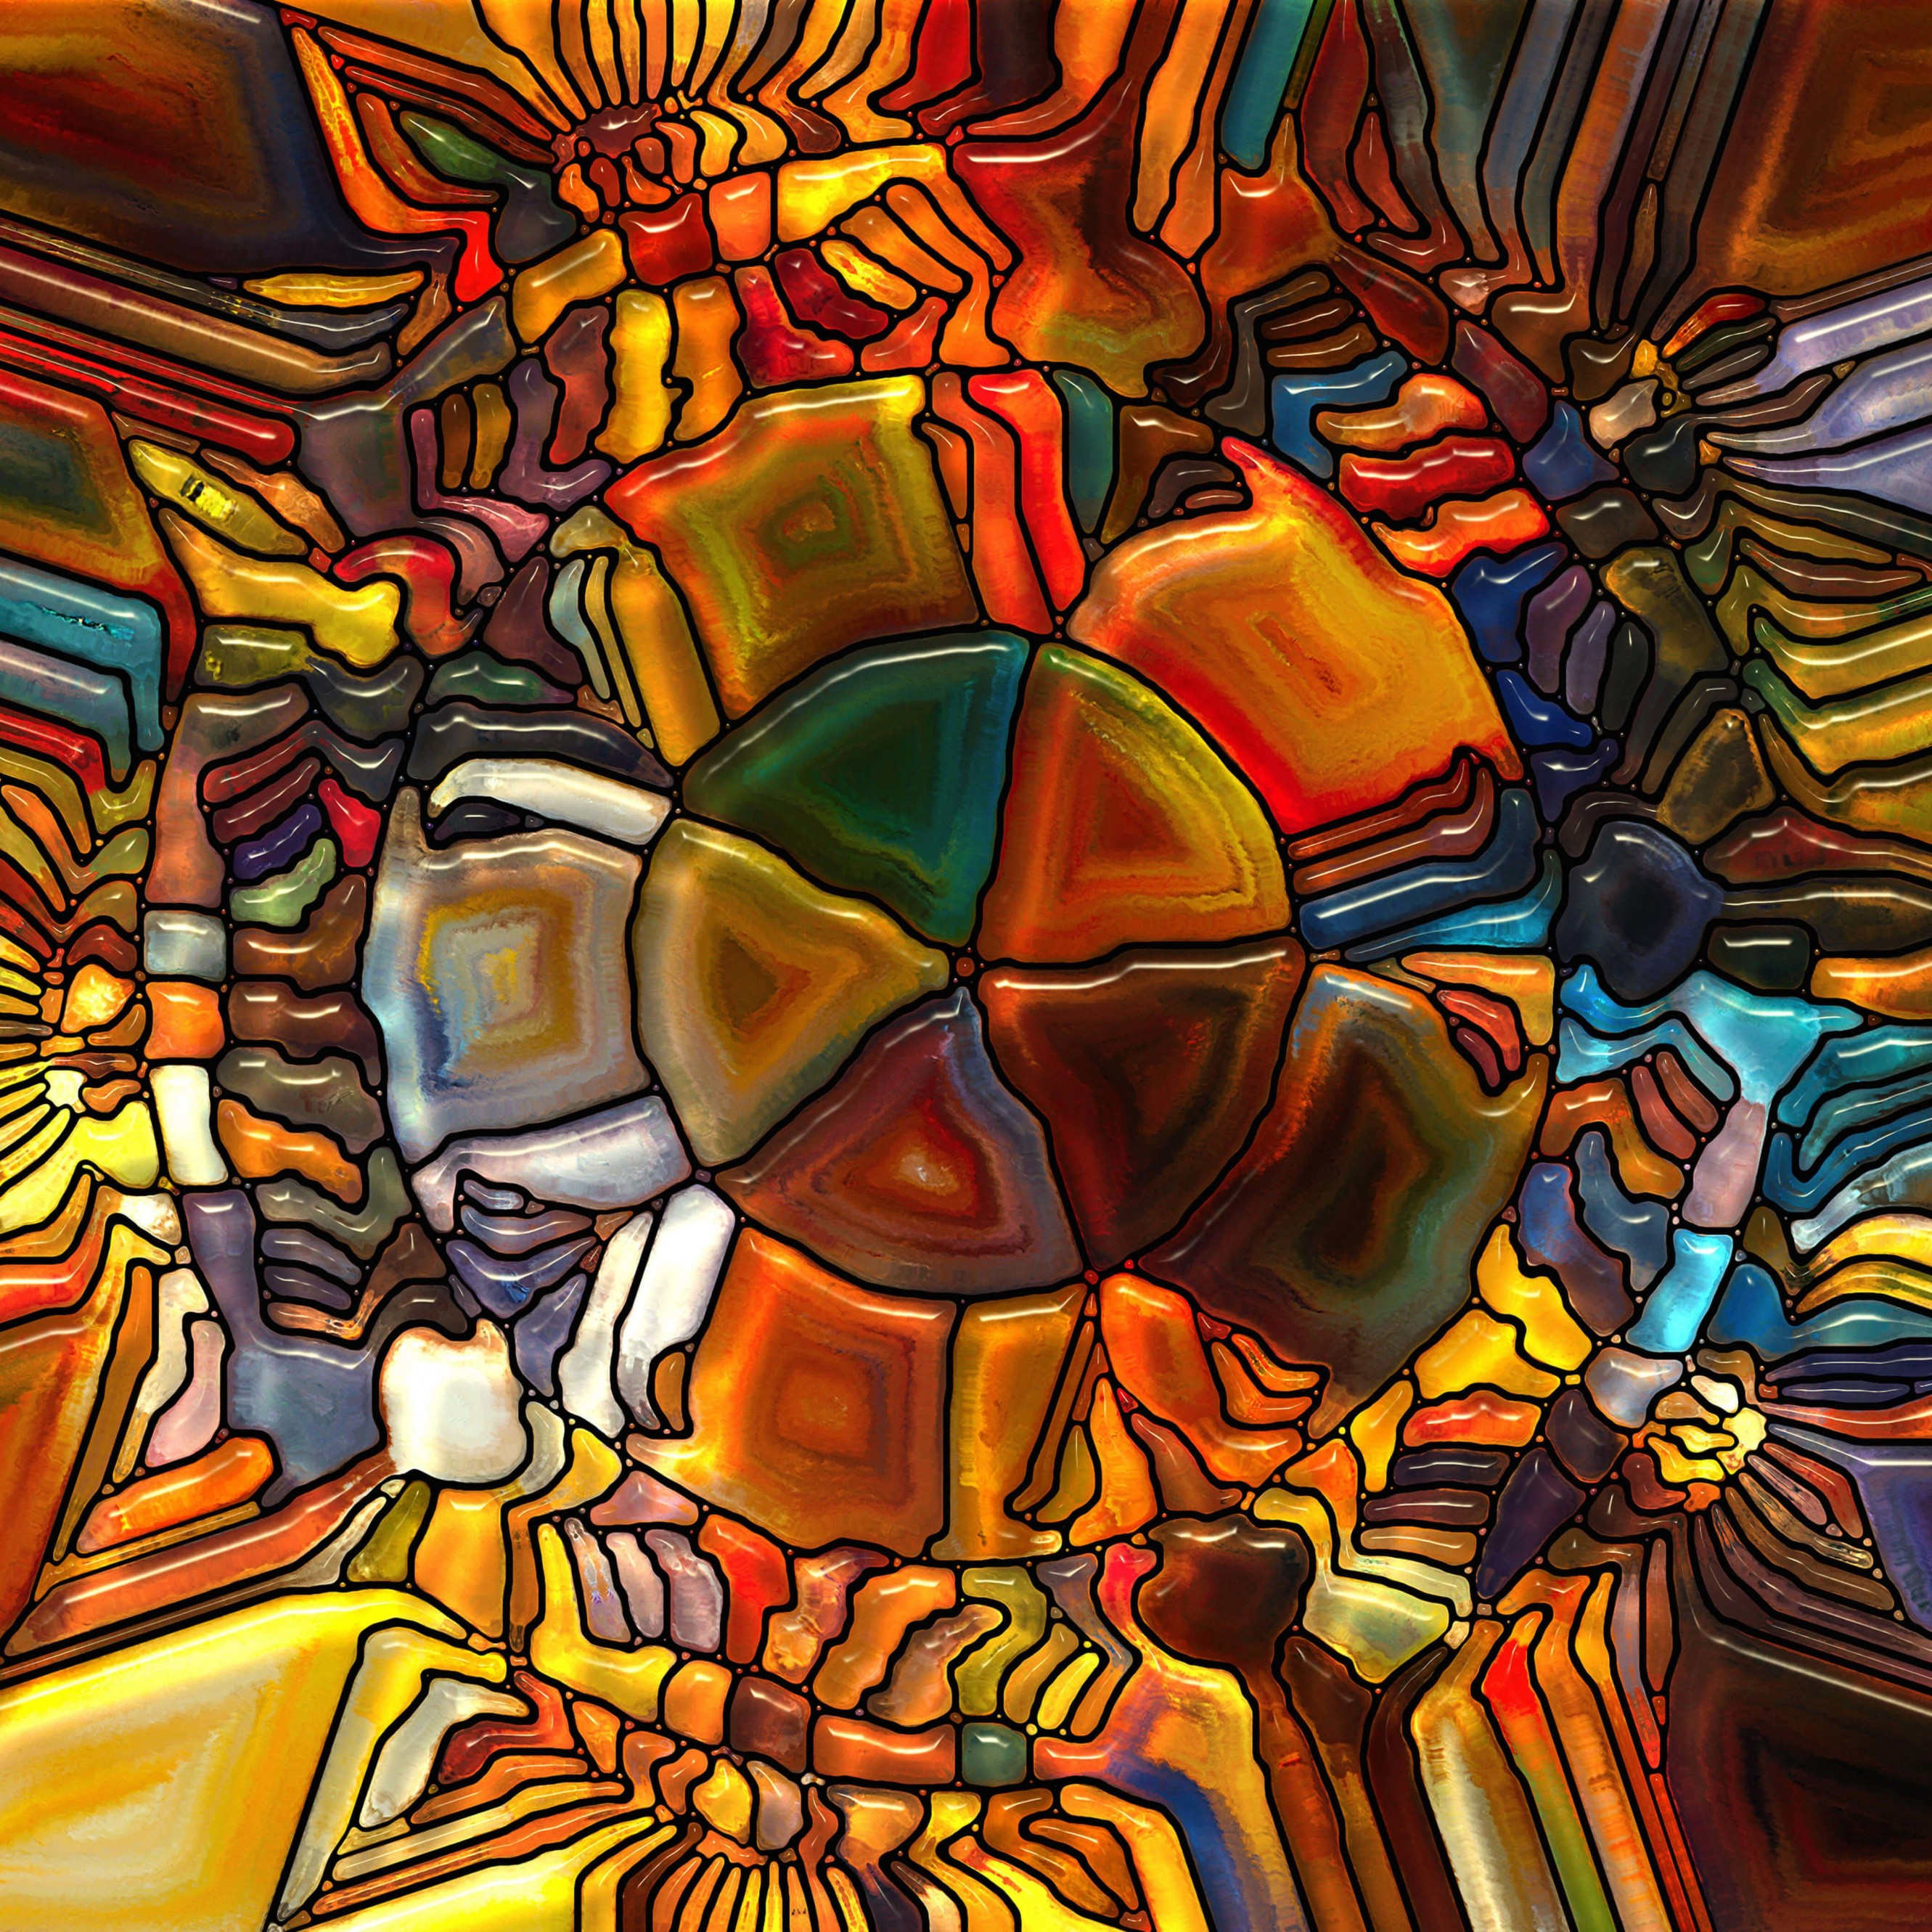 Psychedelic Stained Glass Wallpaper for Apple iPhone 6 Plus